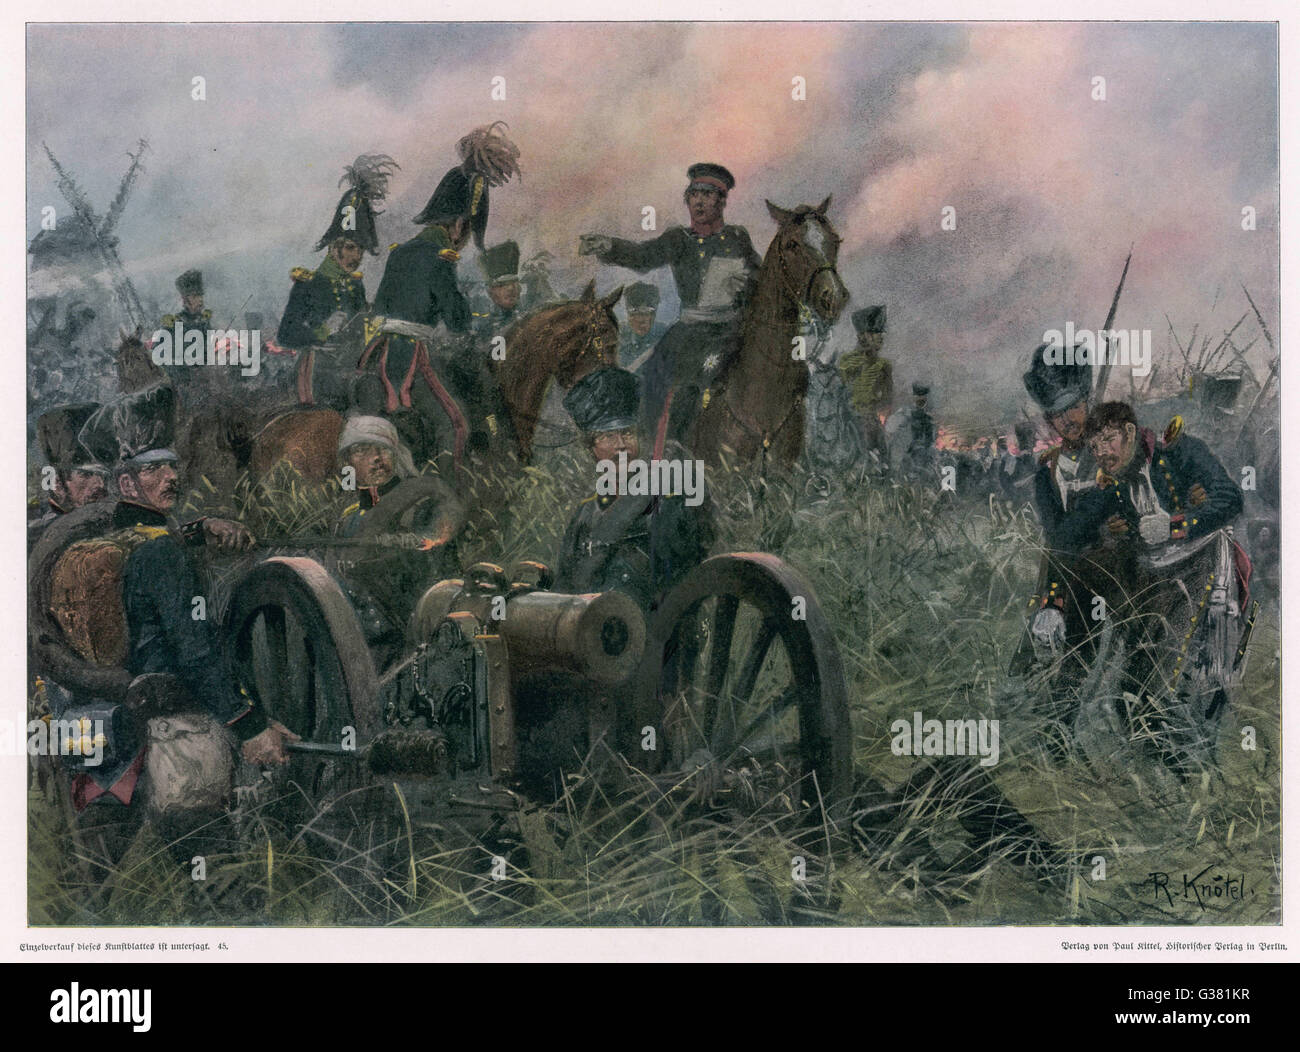 Gneisenau at the battle of  LIGNY, where Napoleon defeats  Blucher's Prussians       Date: 16 June 1815 - Stock Image